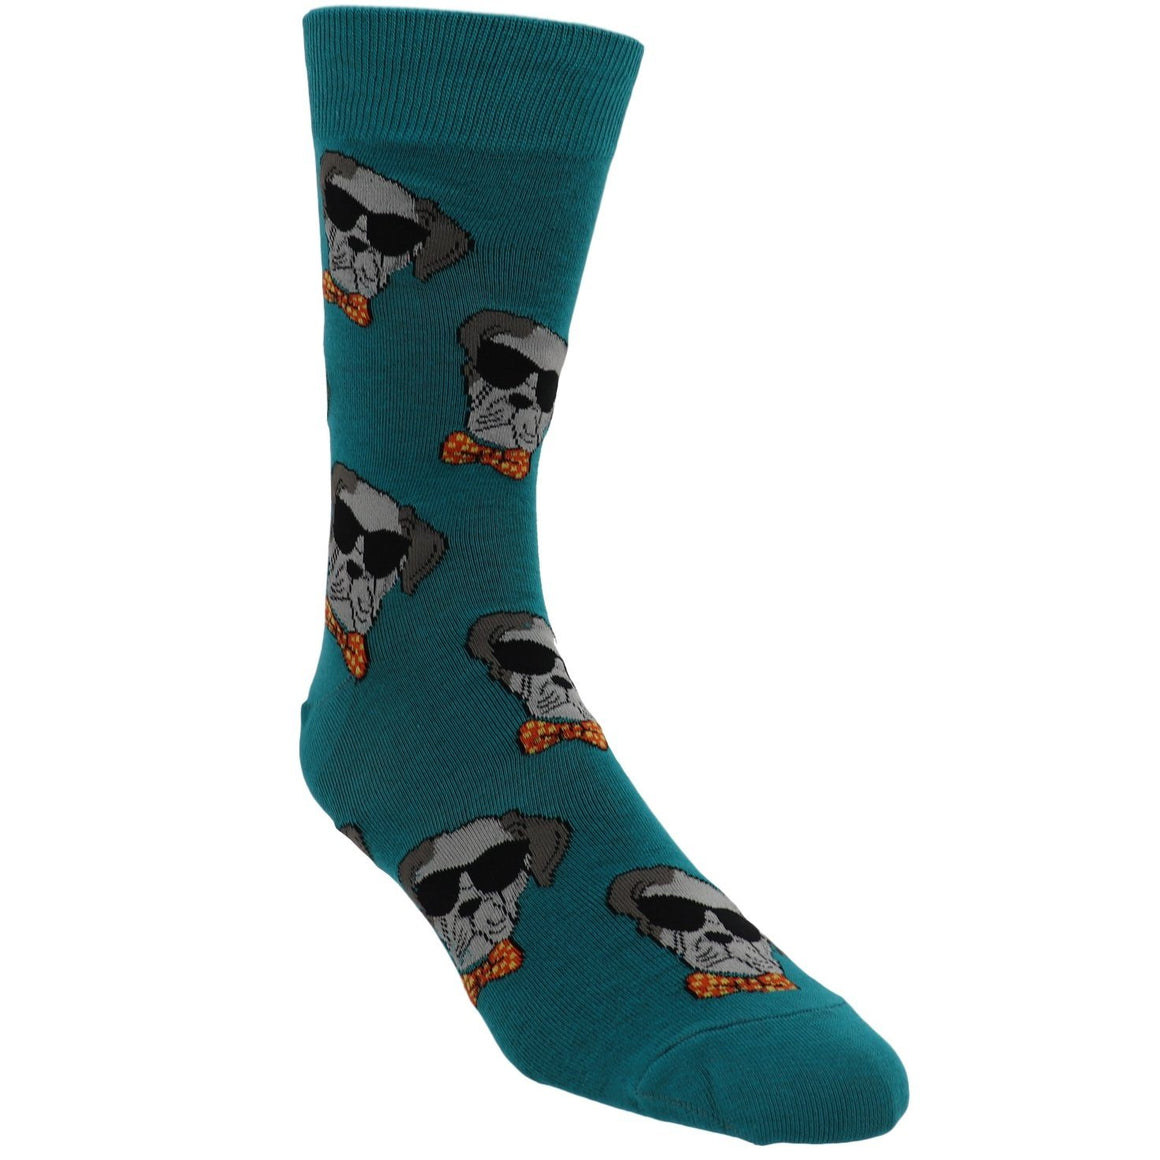 Dapper Dogs Men's Socks by Good Luck Sock - The Sock Spot